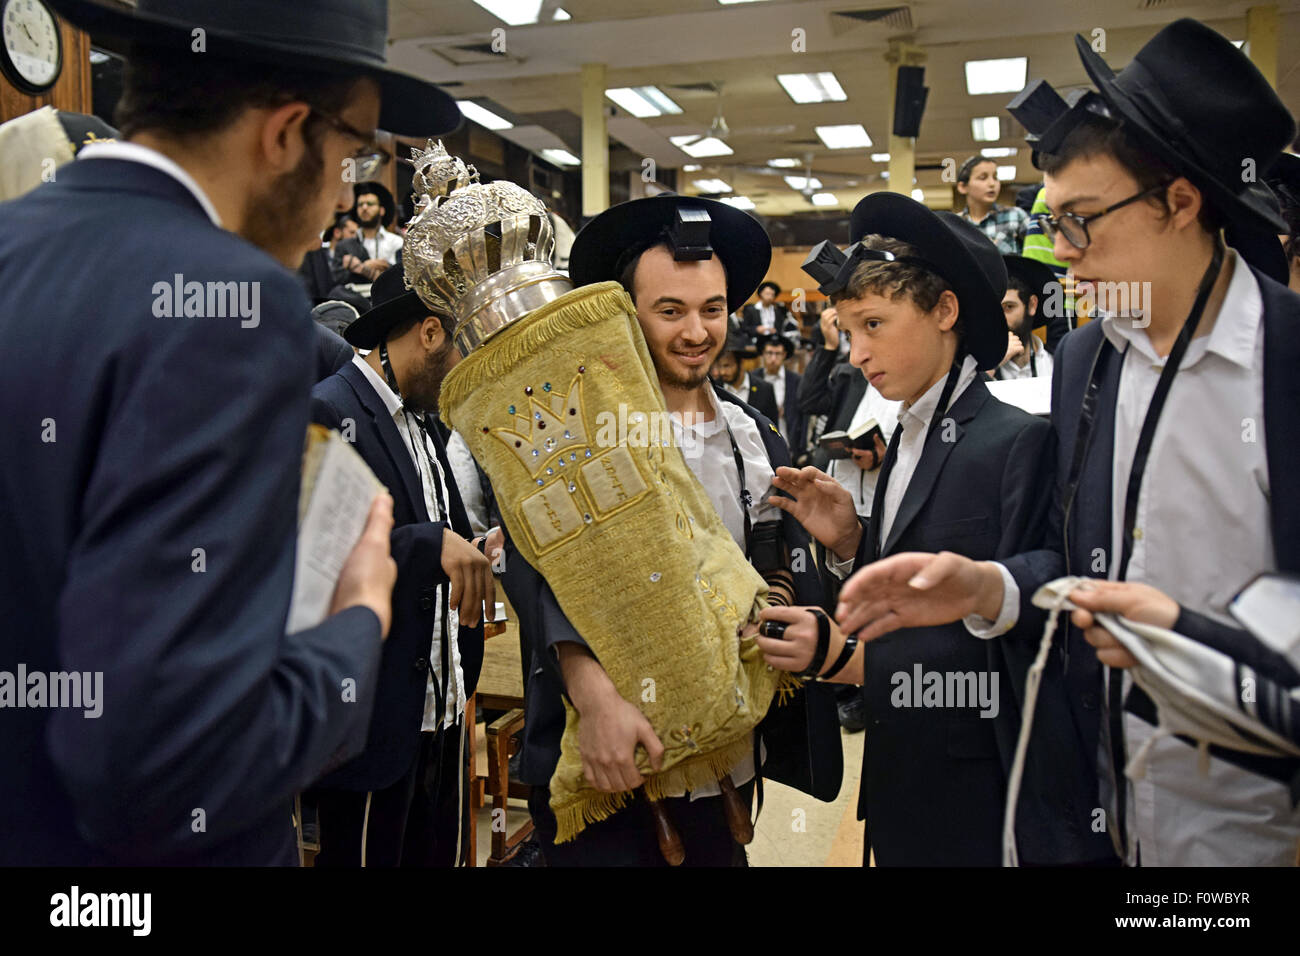 A young man returns a Torah to the Holy Ark after a reading at morning services in a synagogue in Crown Heights, - Stock Image